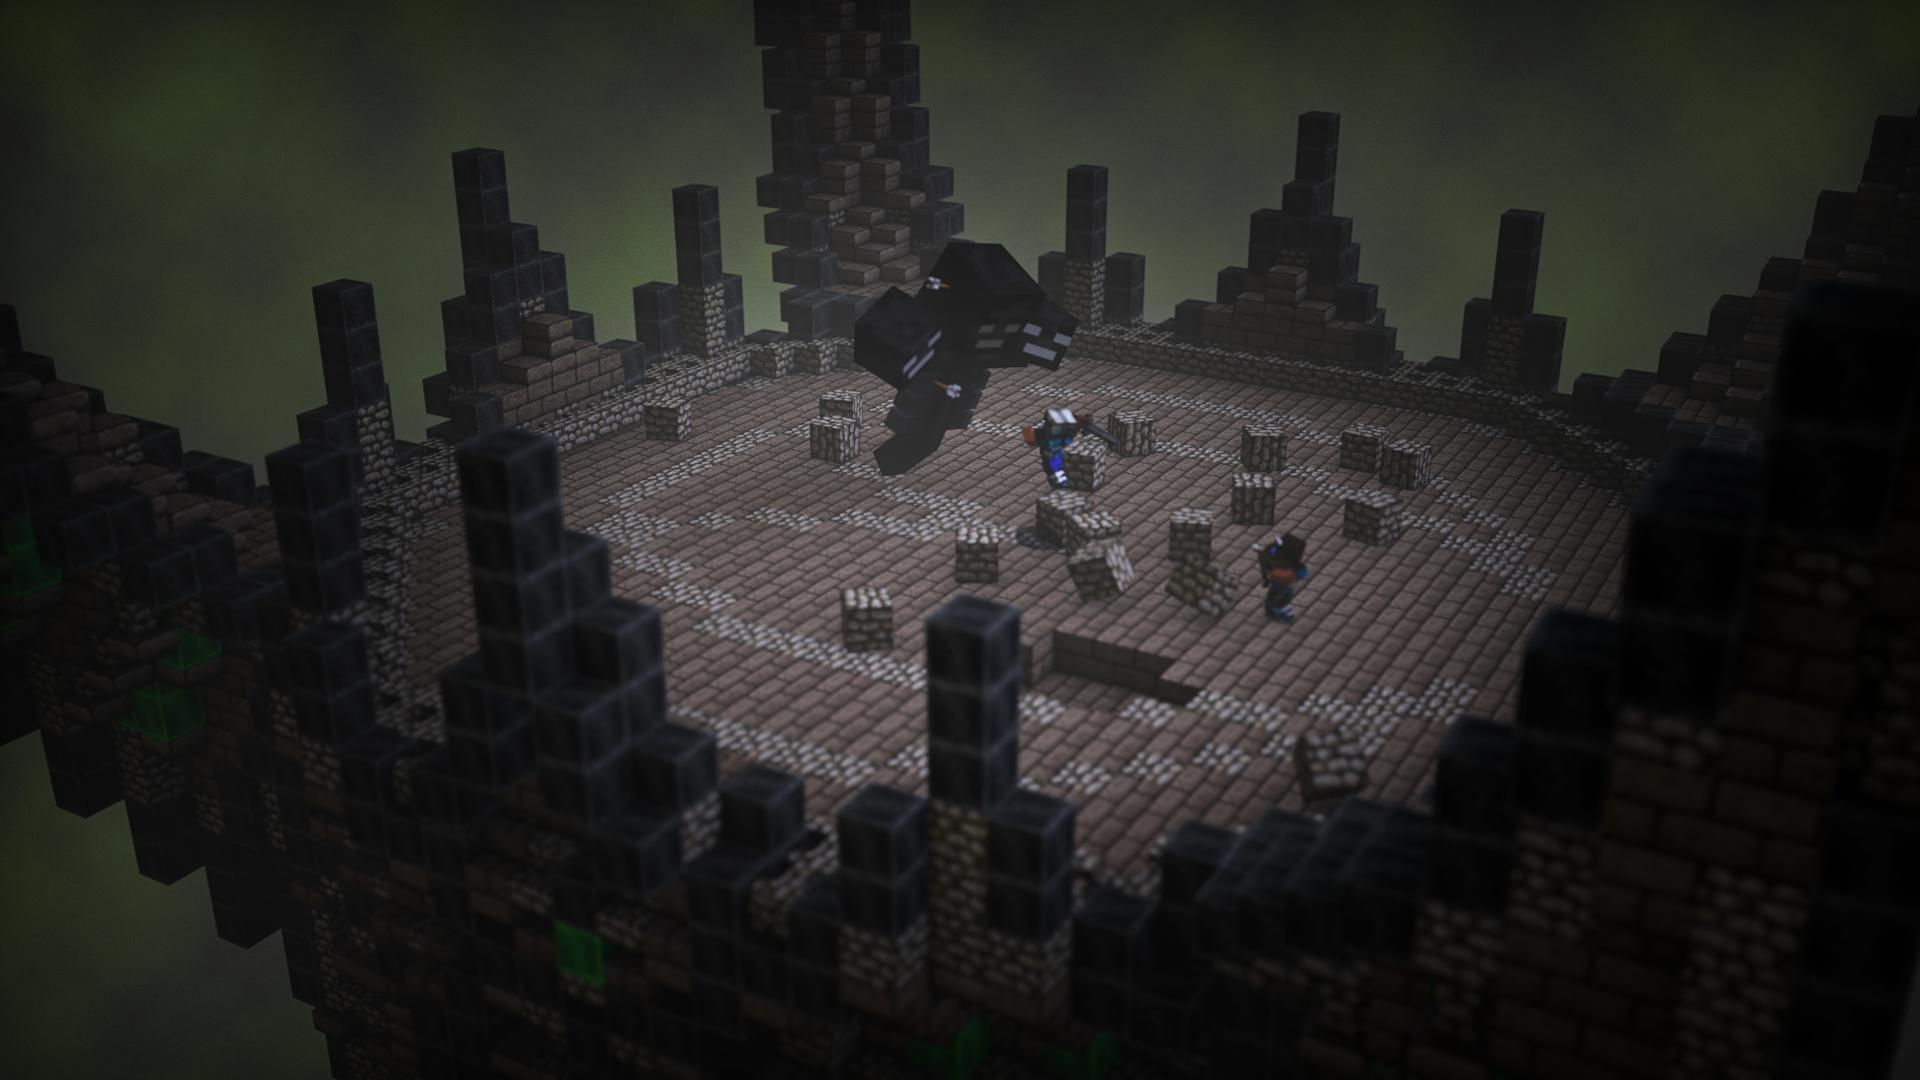 https://img.9minecraft.net/Maps/Withers-Challenge-Map-1.jpg